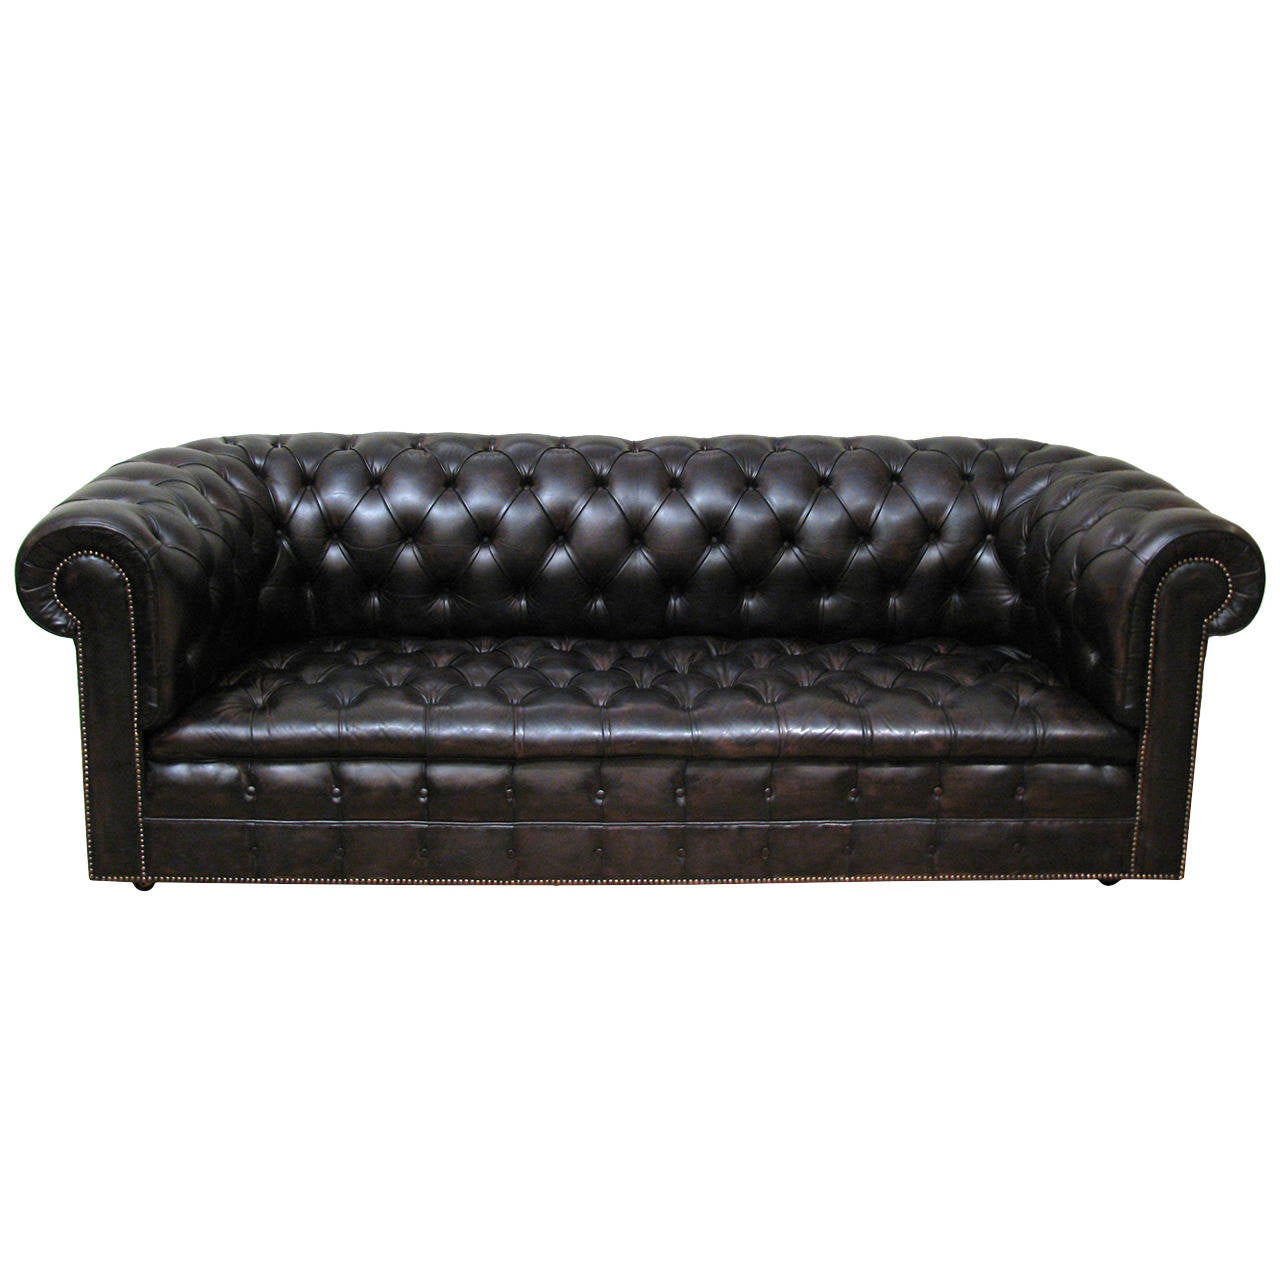 English Chesterfield Tufted Leather Sofa At 1stdibs